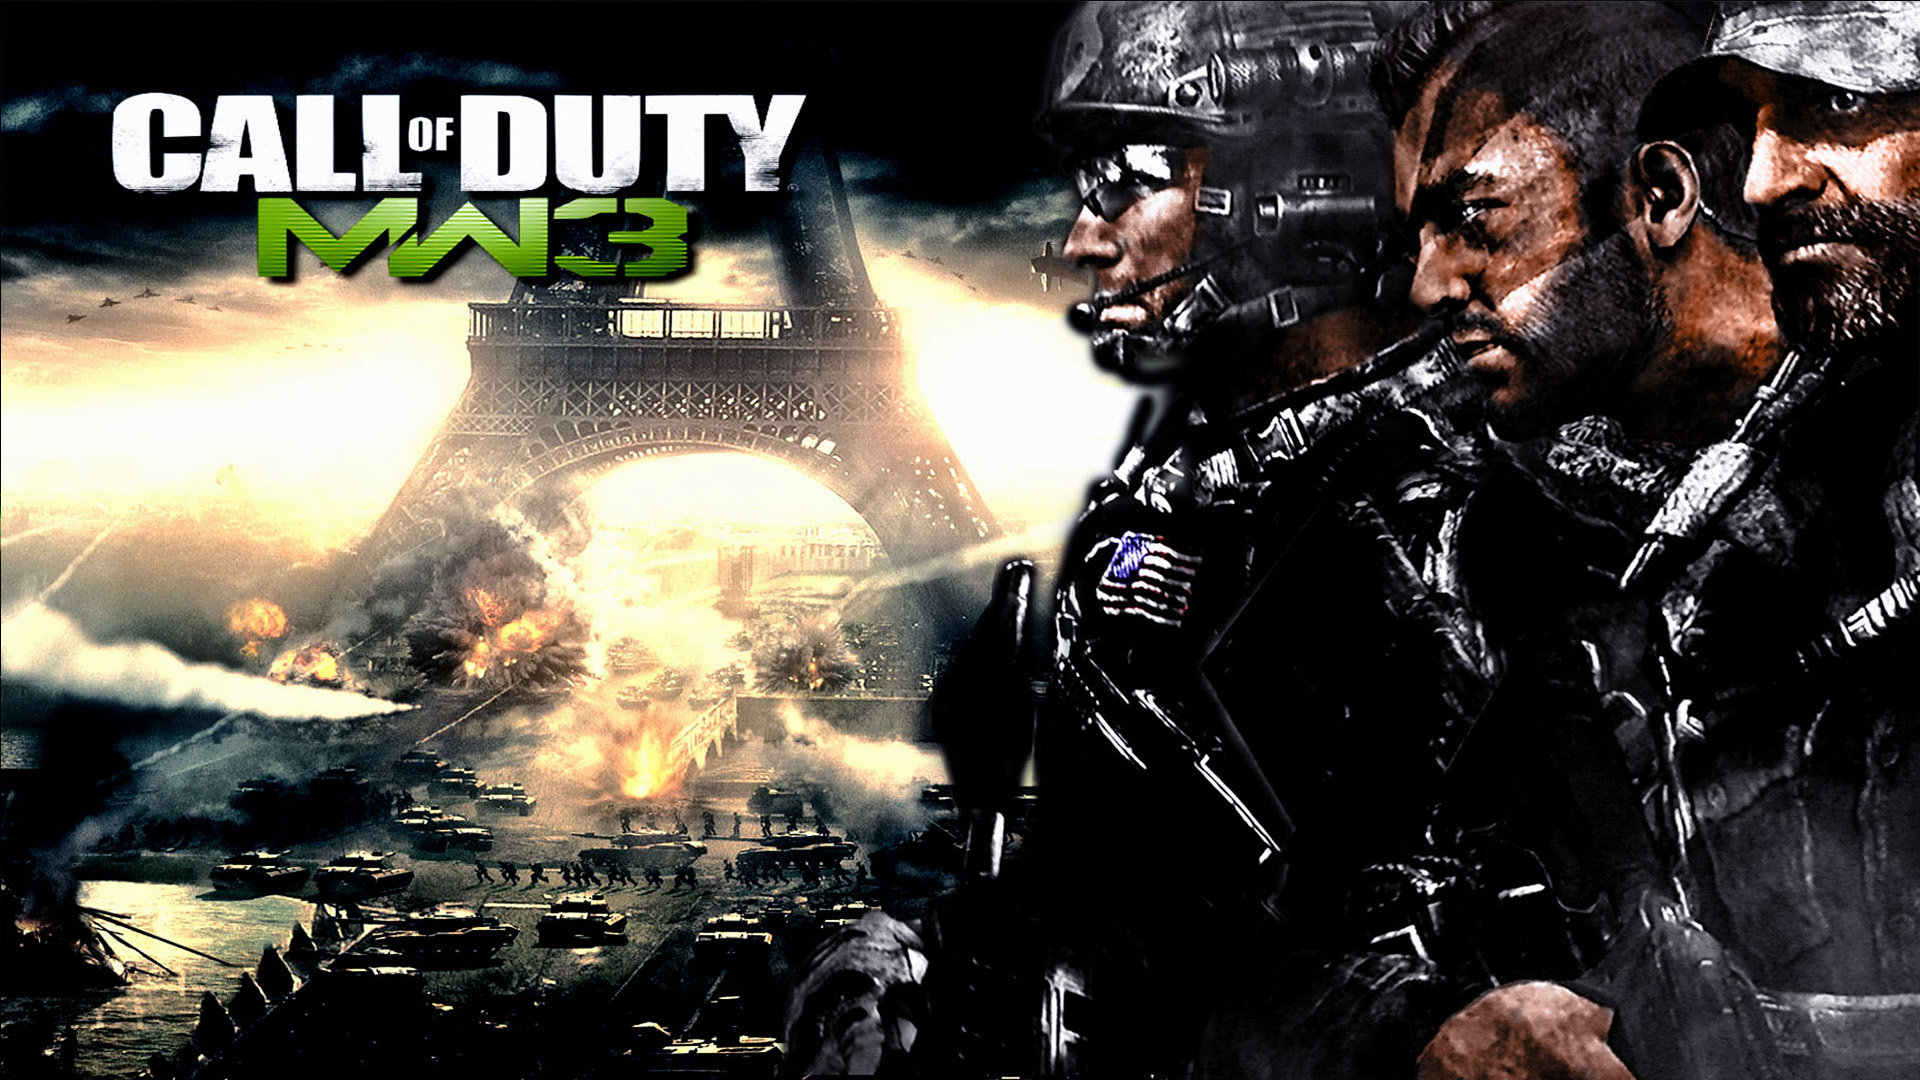 Call Of Duty Modern Warfare 3 Mw3 Wallpapers Hd For